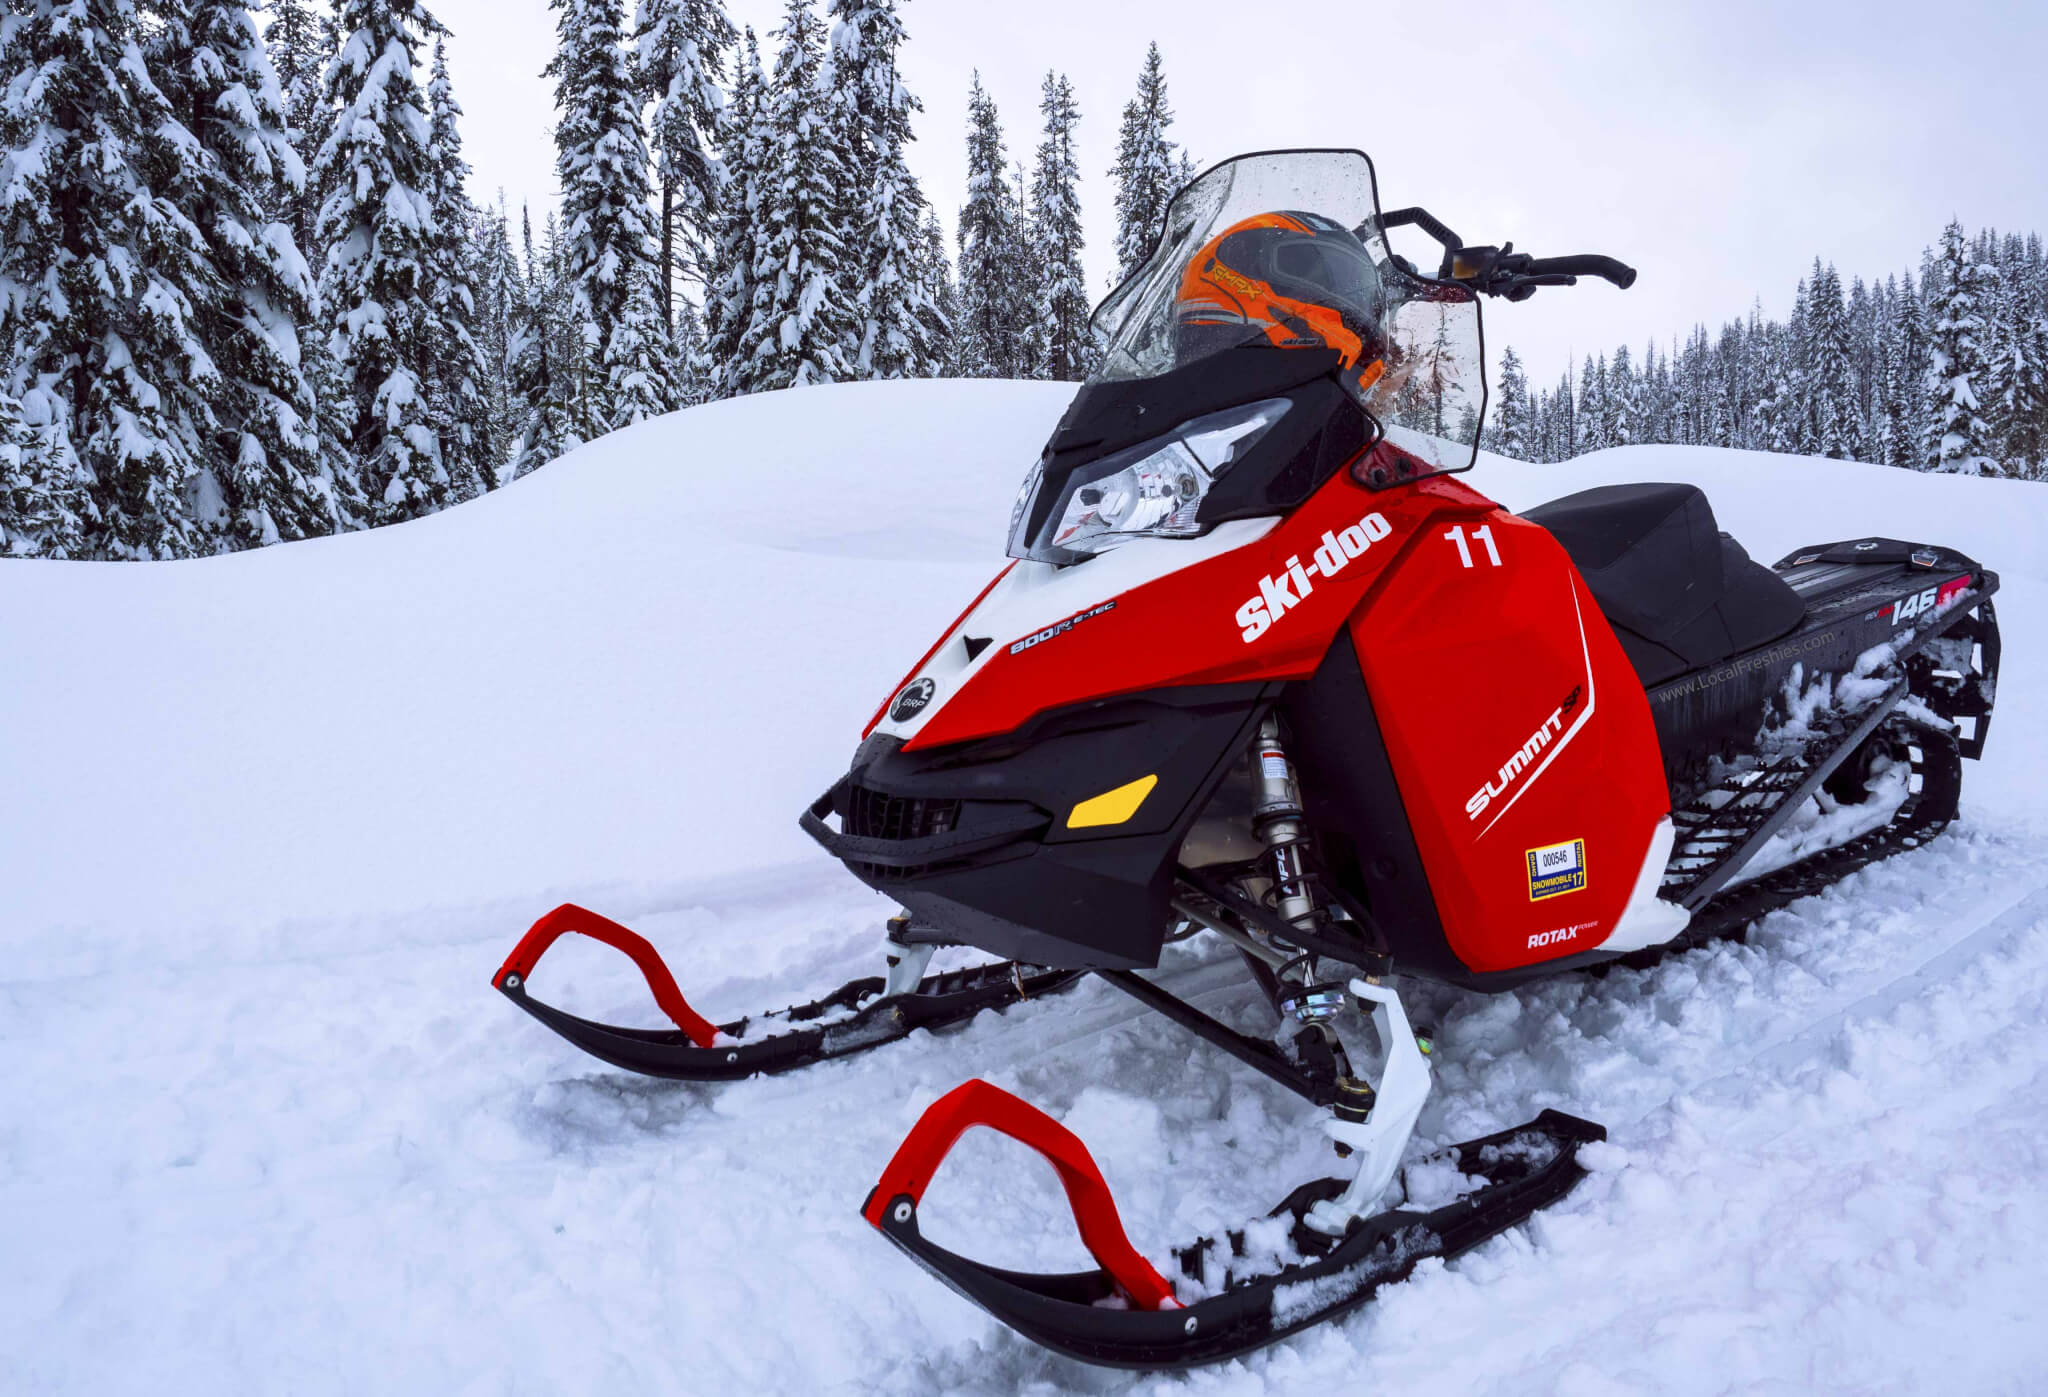 ski doo snowmobile rental at Brundage Ski Resort for Burgdorf Hot Springs journey